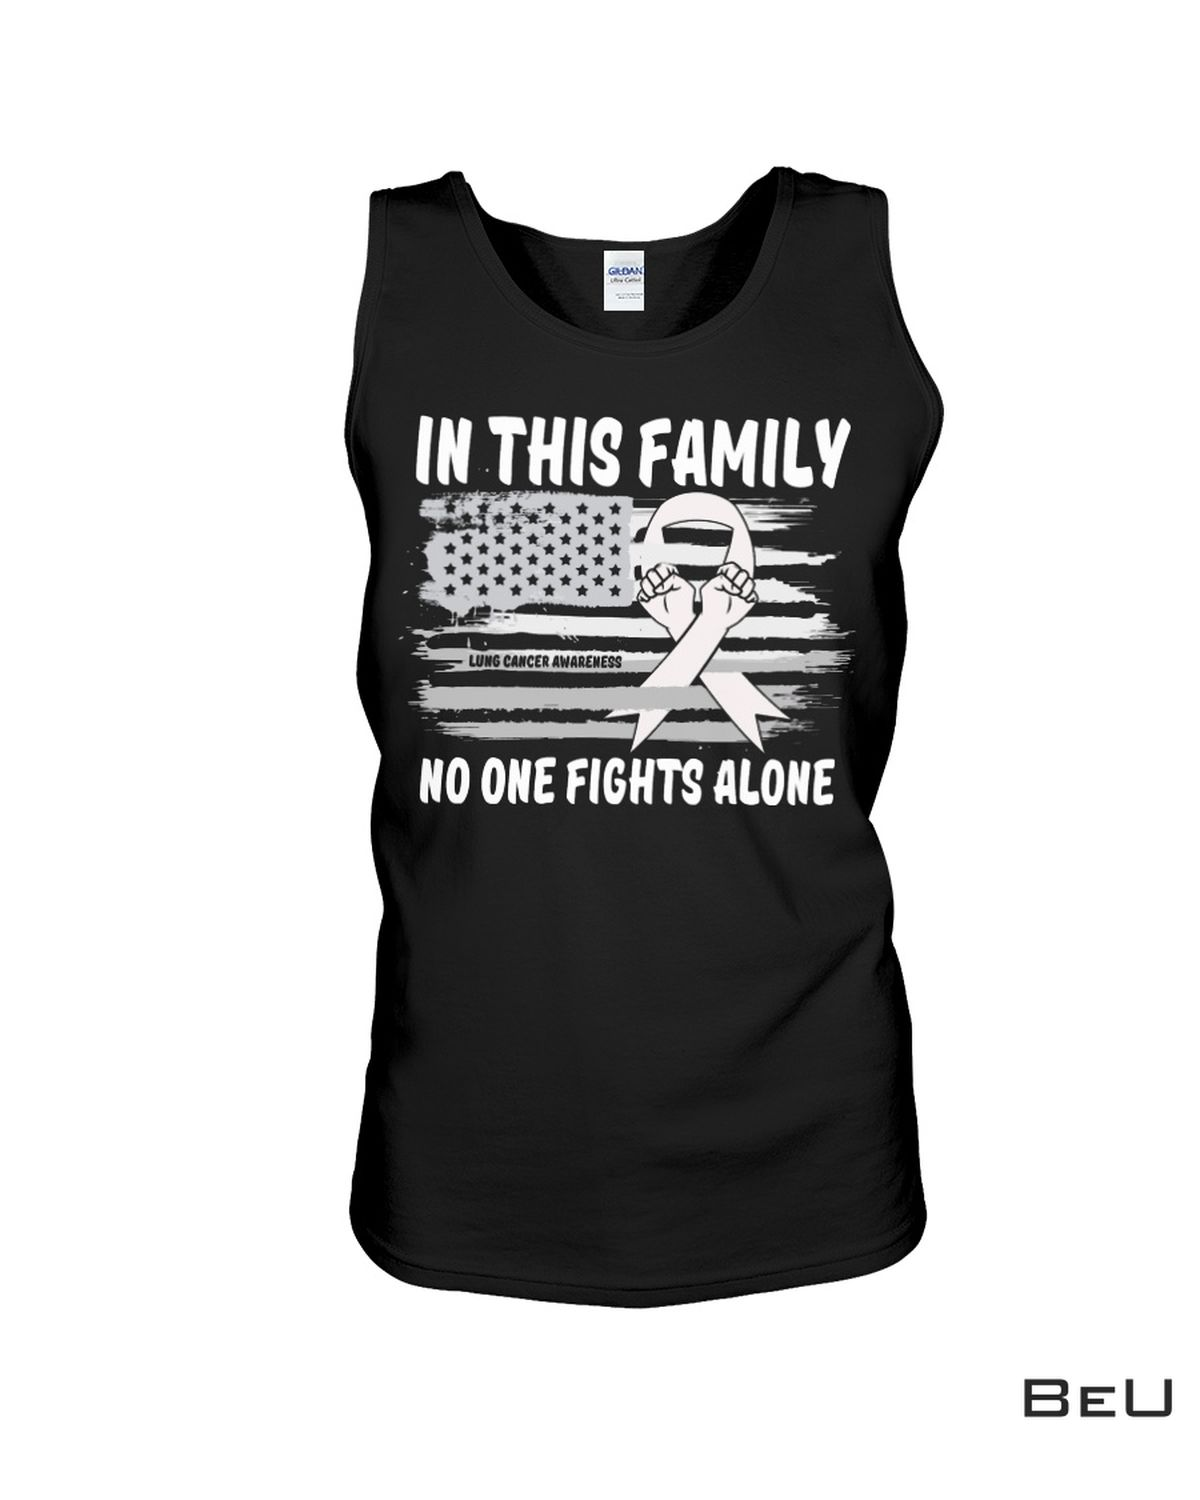 Clothing In This Family No One Fights Alone Lung Cancer Awareness Shirt